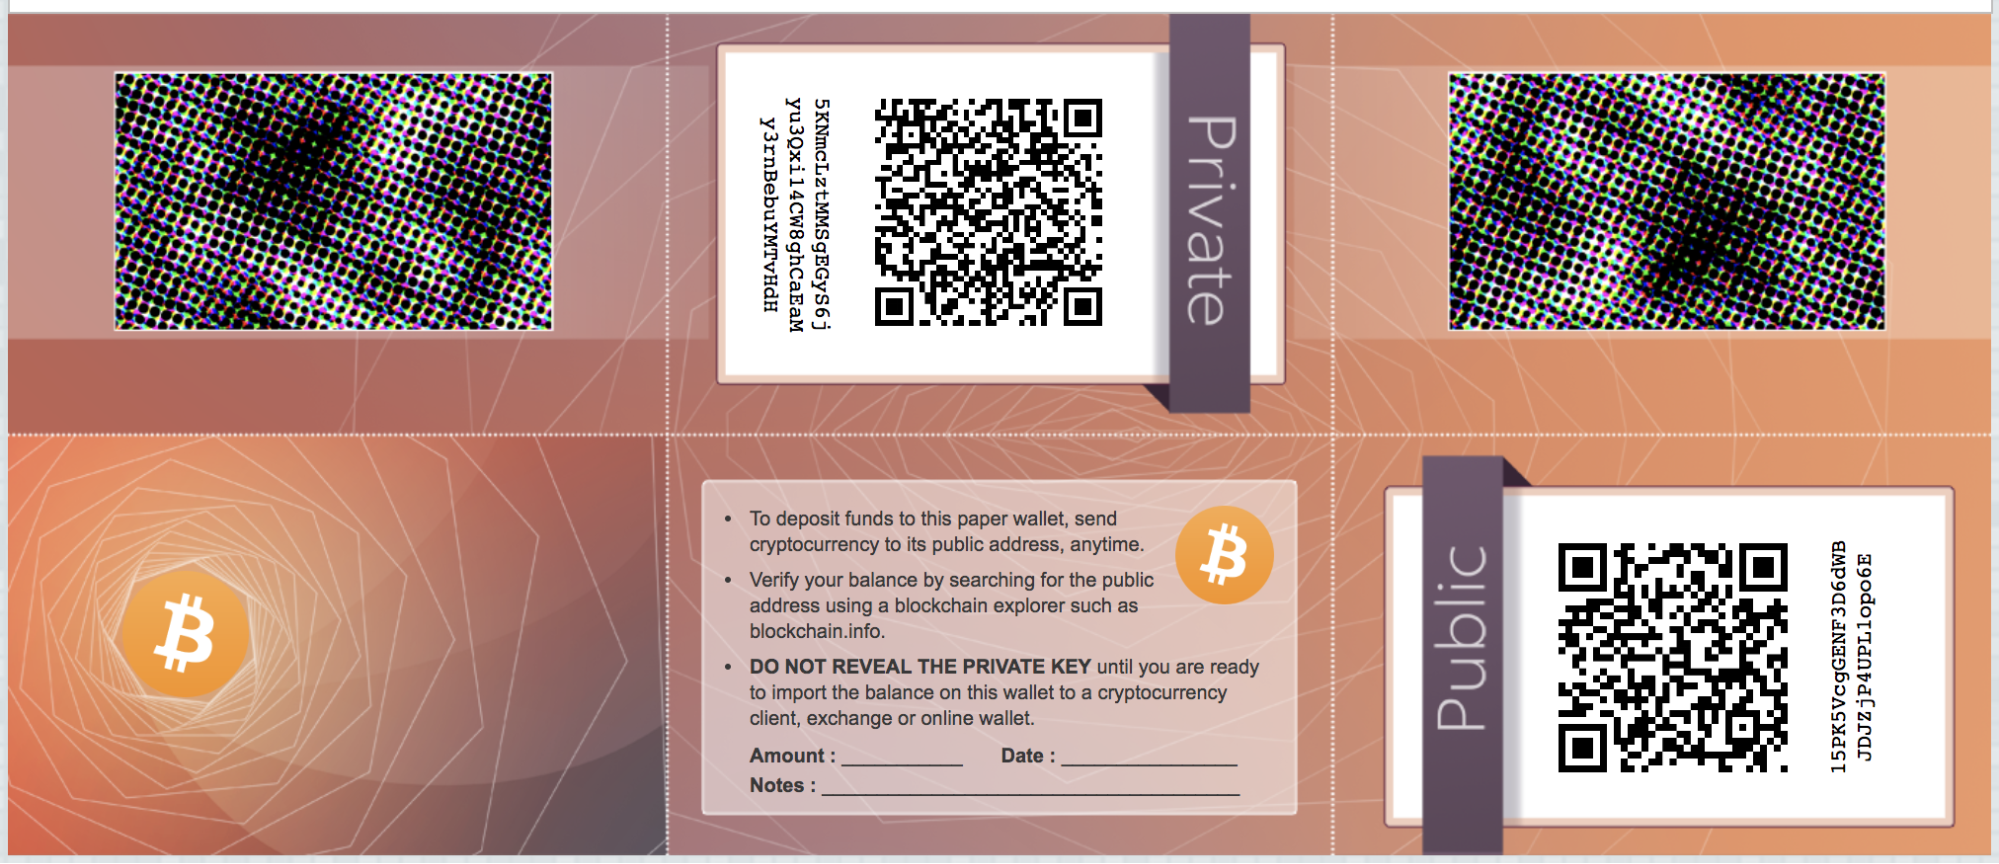 Example of a paper wallet